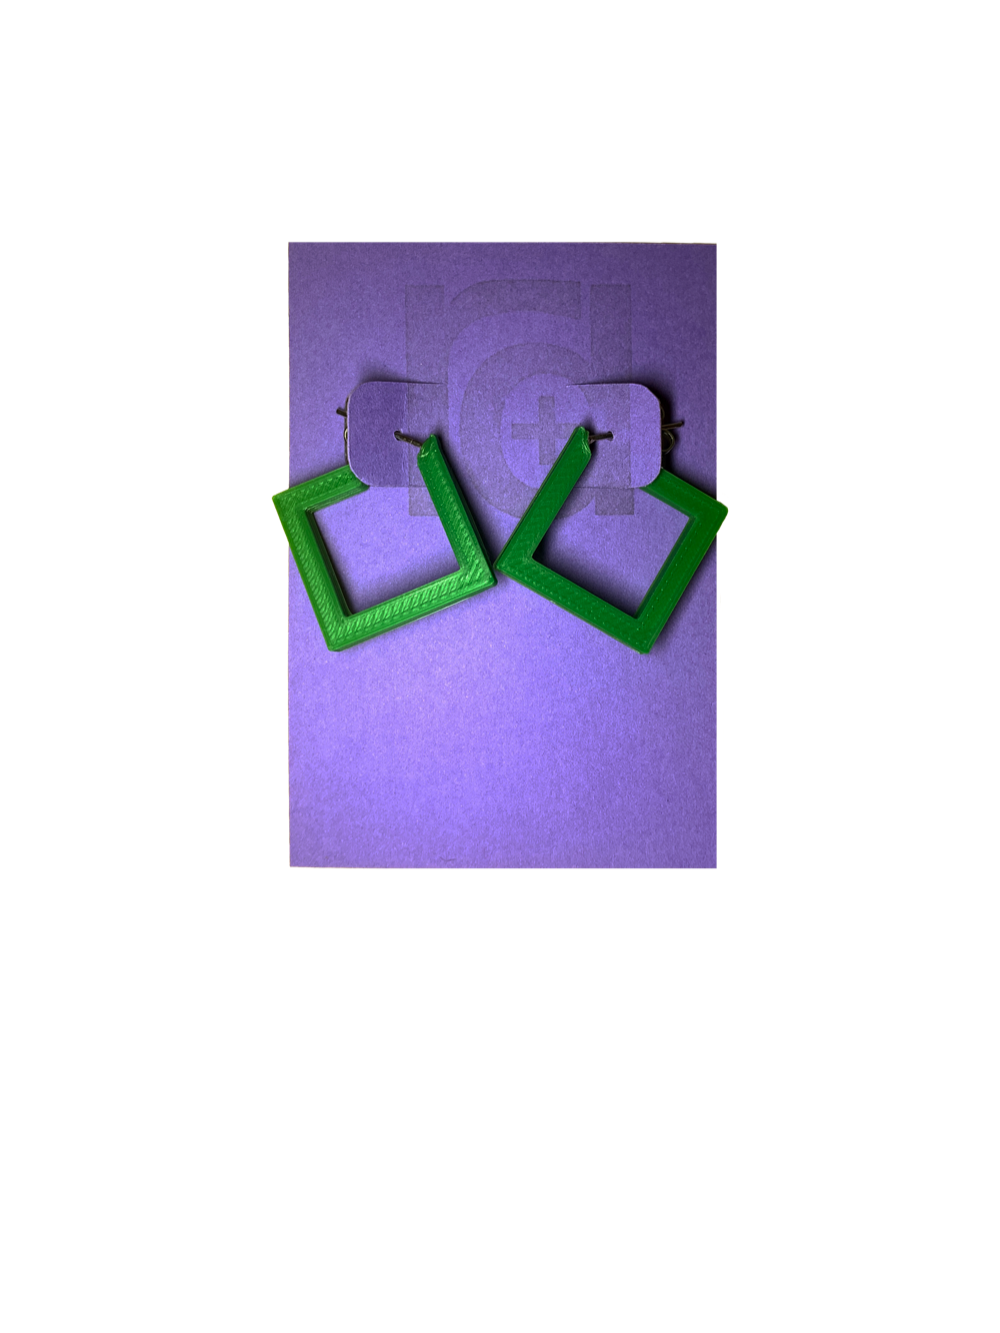 On a bight purple R+D card are two 3D printed earrings. They are hoops that are in the shape of squares. These are printed in a bright kelly green.